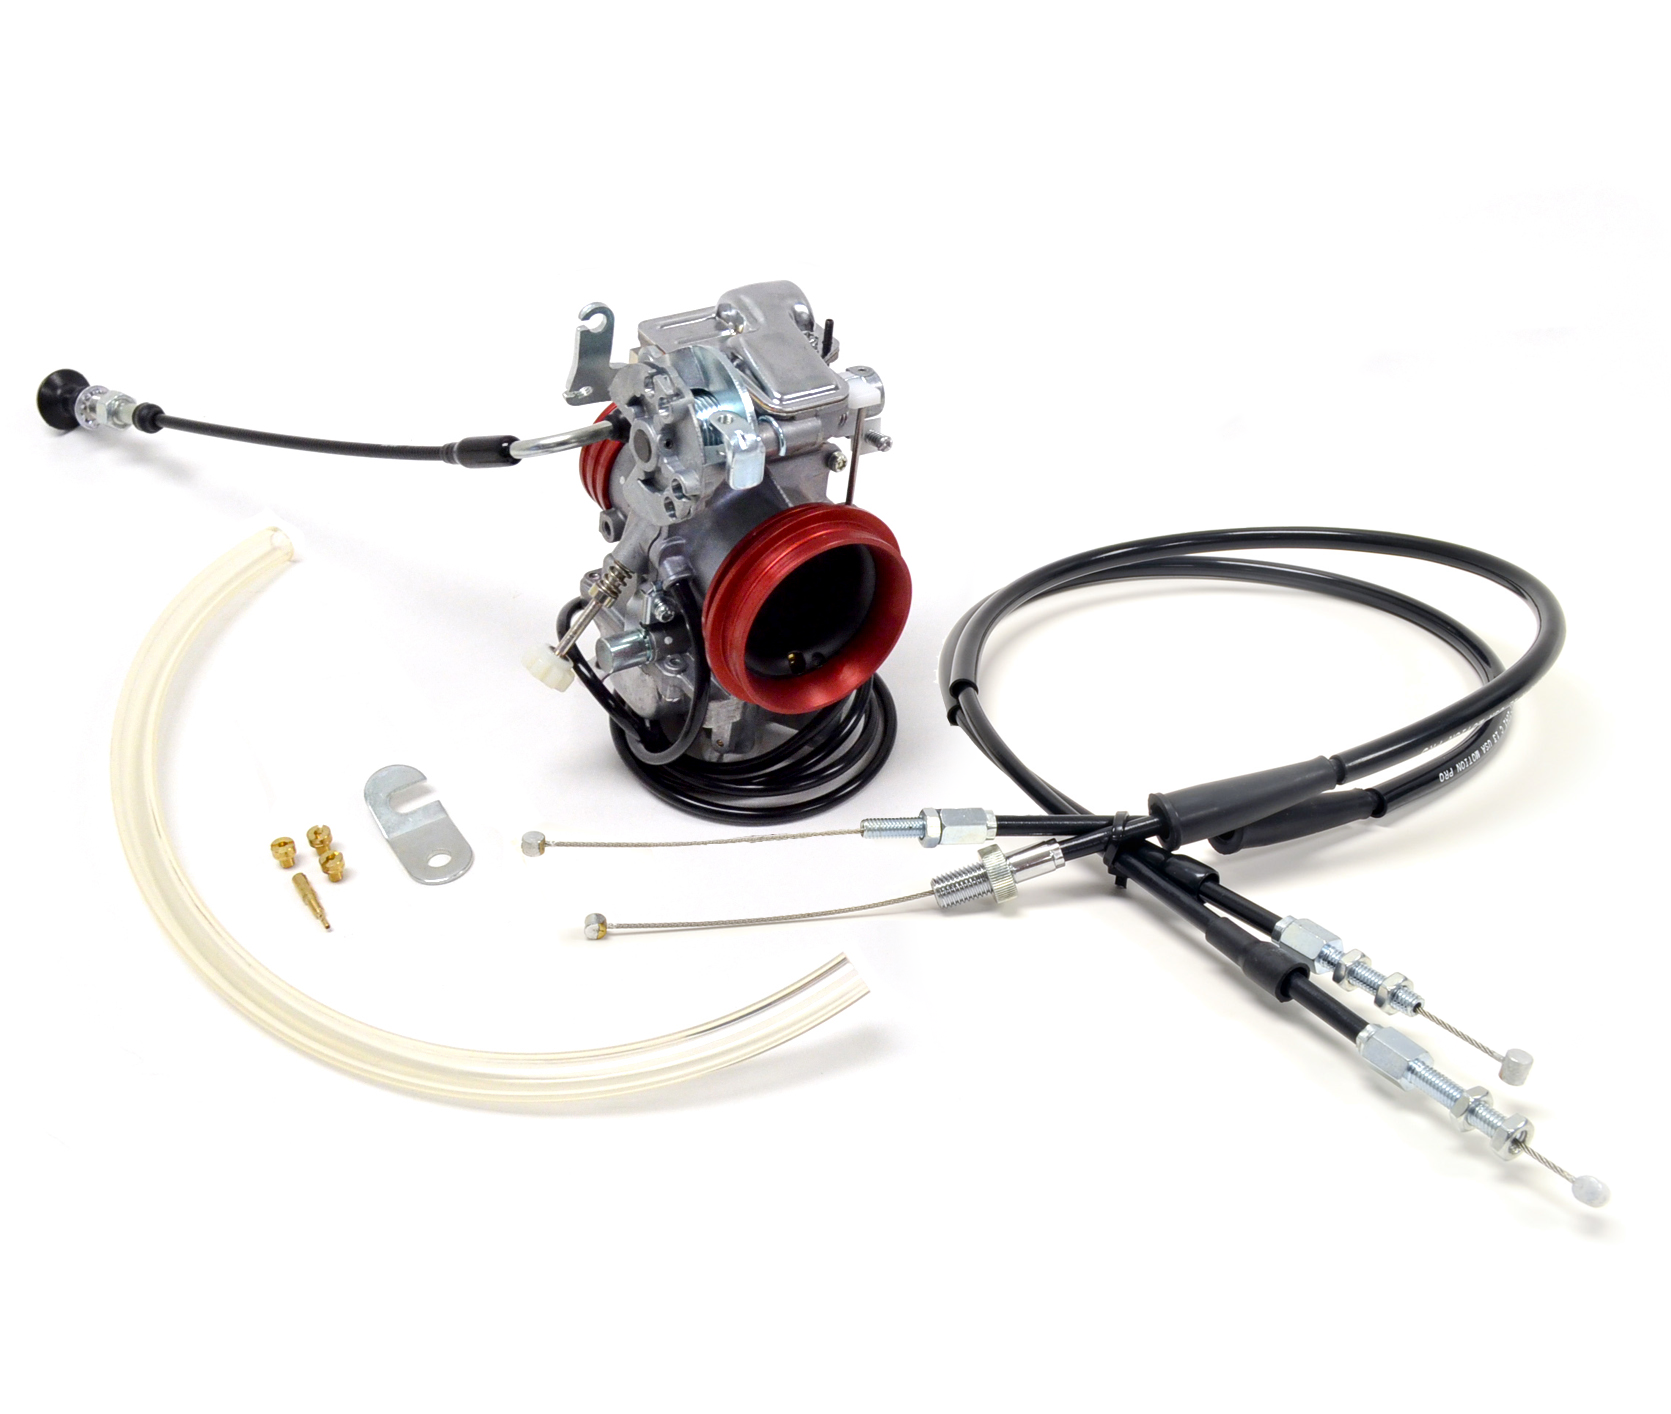 The XR's Only Mikuni Pumper Carburetor 40mm serves as a superior stock replacement carb, particularly if you're looking for a carb that performs with the authority of a pumper carburetor, with smoother acceleration, unsurpassed reliability and versatil.